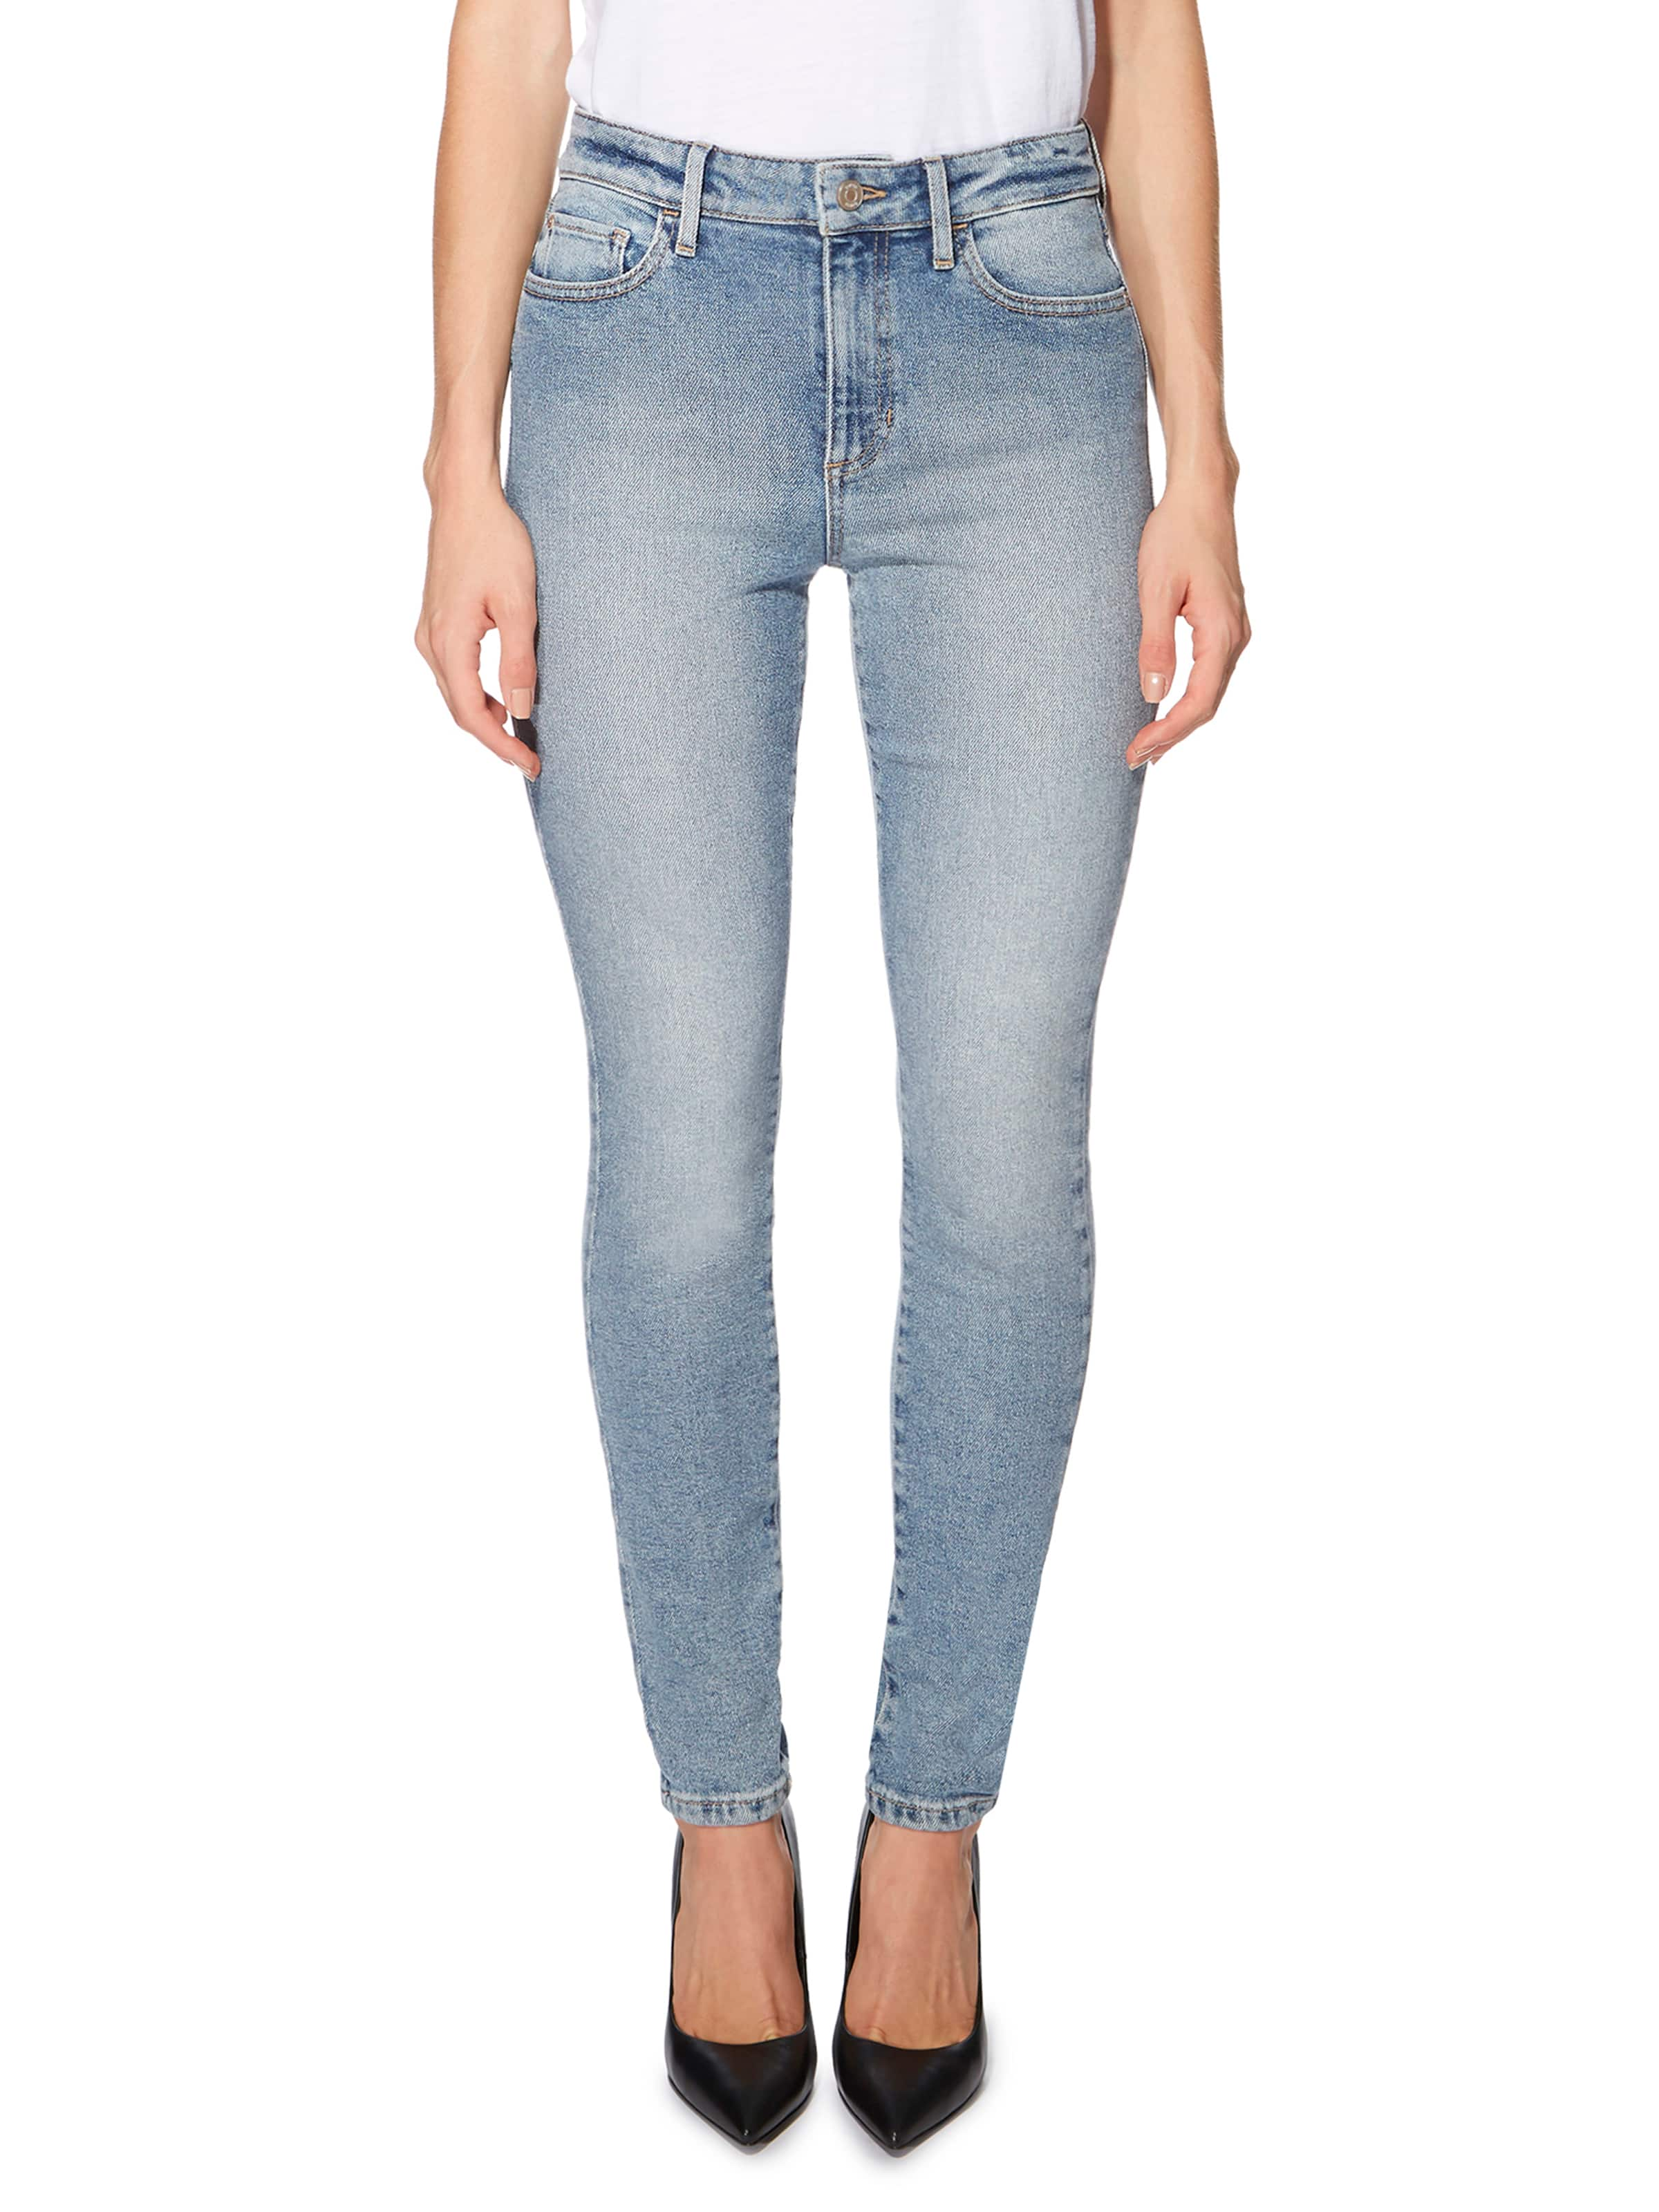 Just Jeans Guess 1981 High Rise Skinny In Beachside Wash 9387626